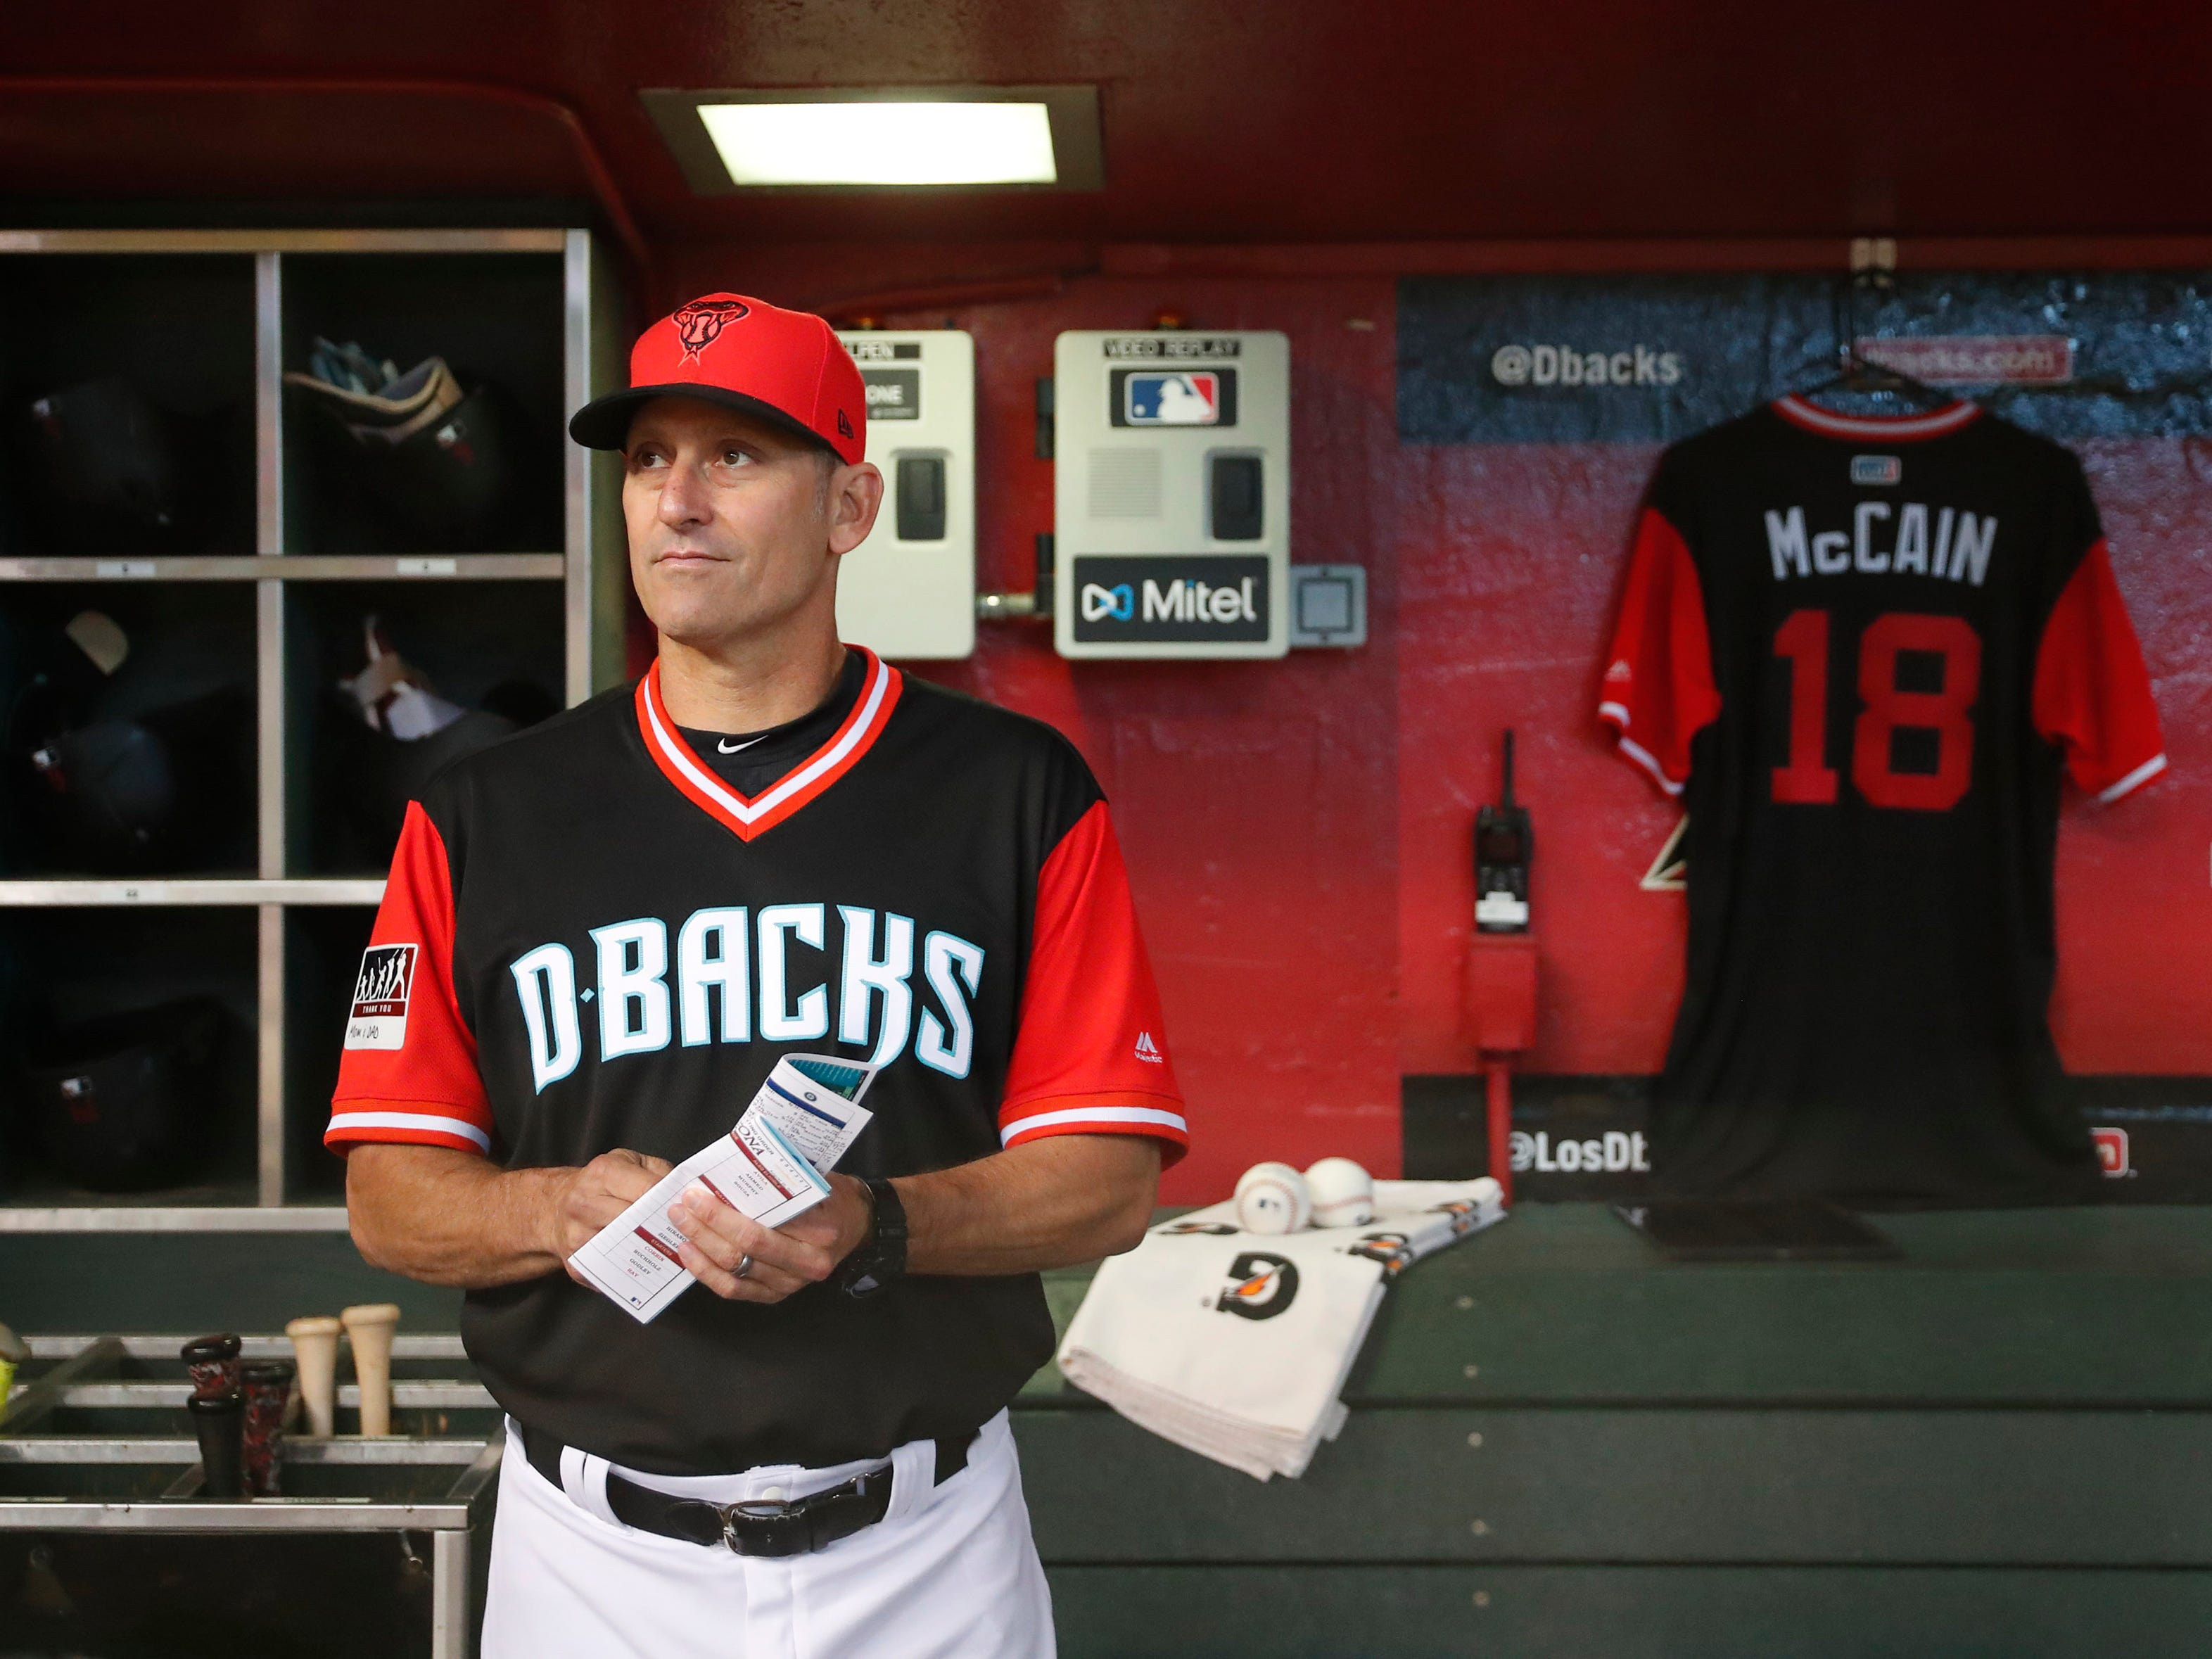 Arizona Diamondbacks manager Torey Lovullo (17) stands in the dugout next to a jersey for Sen. John McCain before playing against the Seattle Mariners at Chase Field in Phoenix, Ariz. August 26. 2018. The six-term Arizona senator died Saturday at age 81.